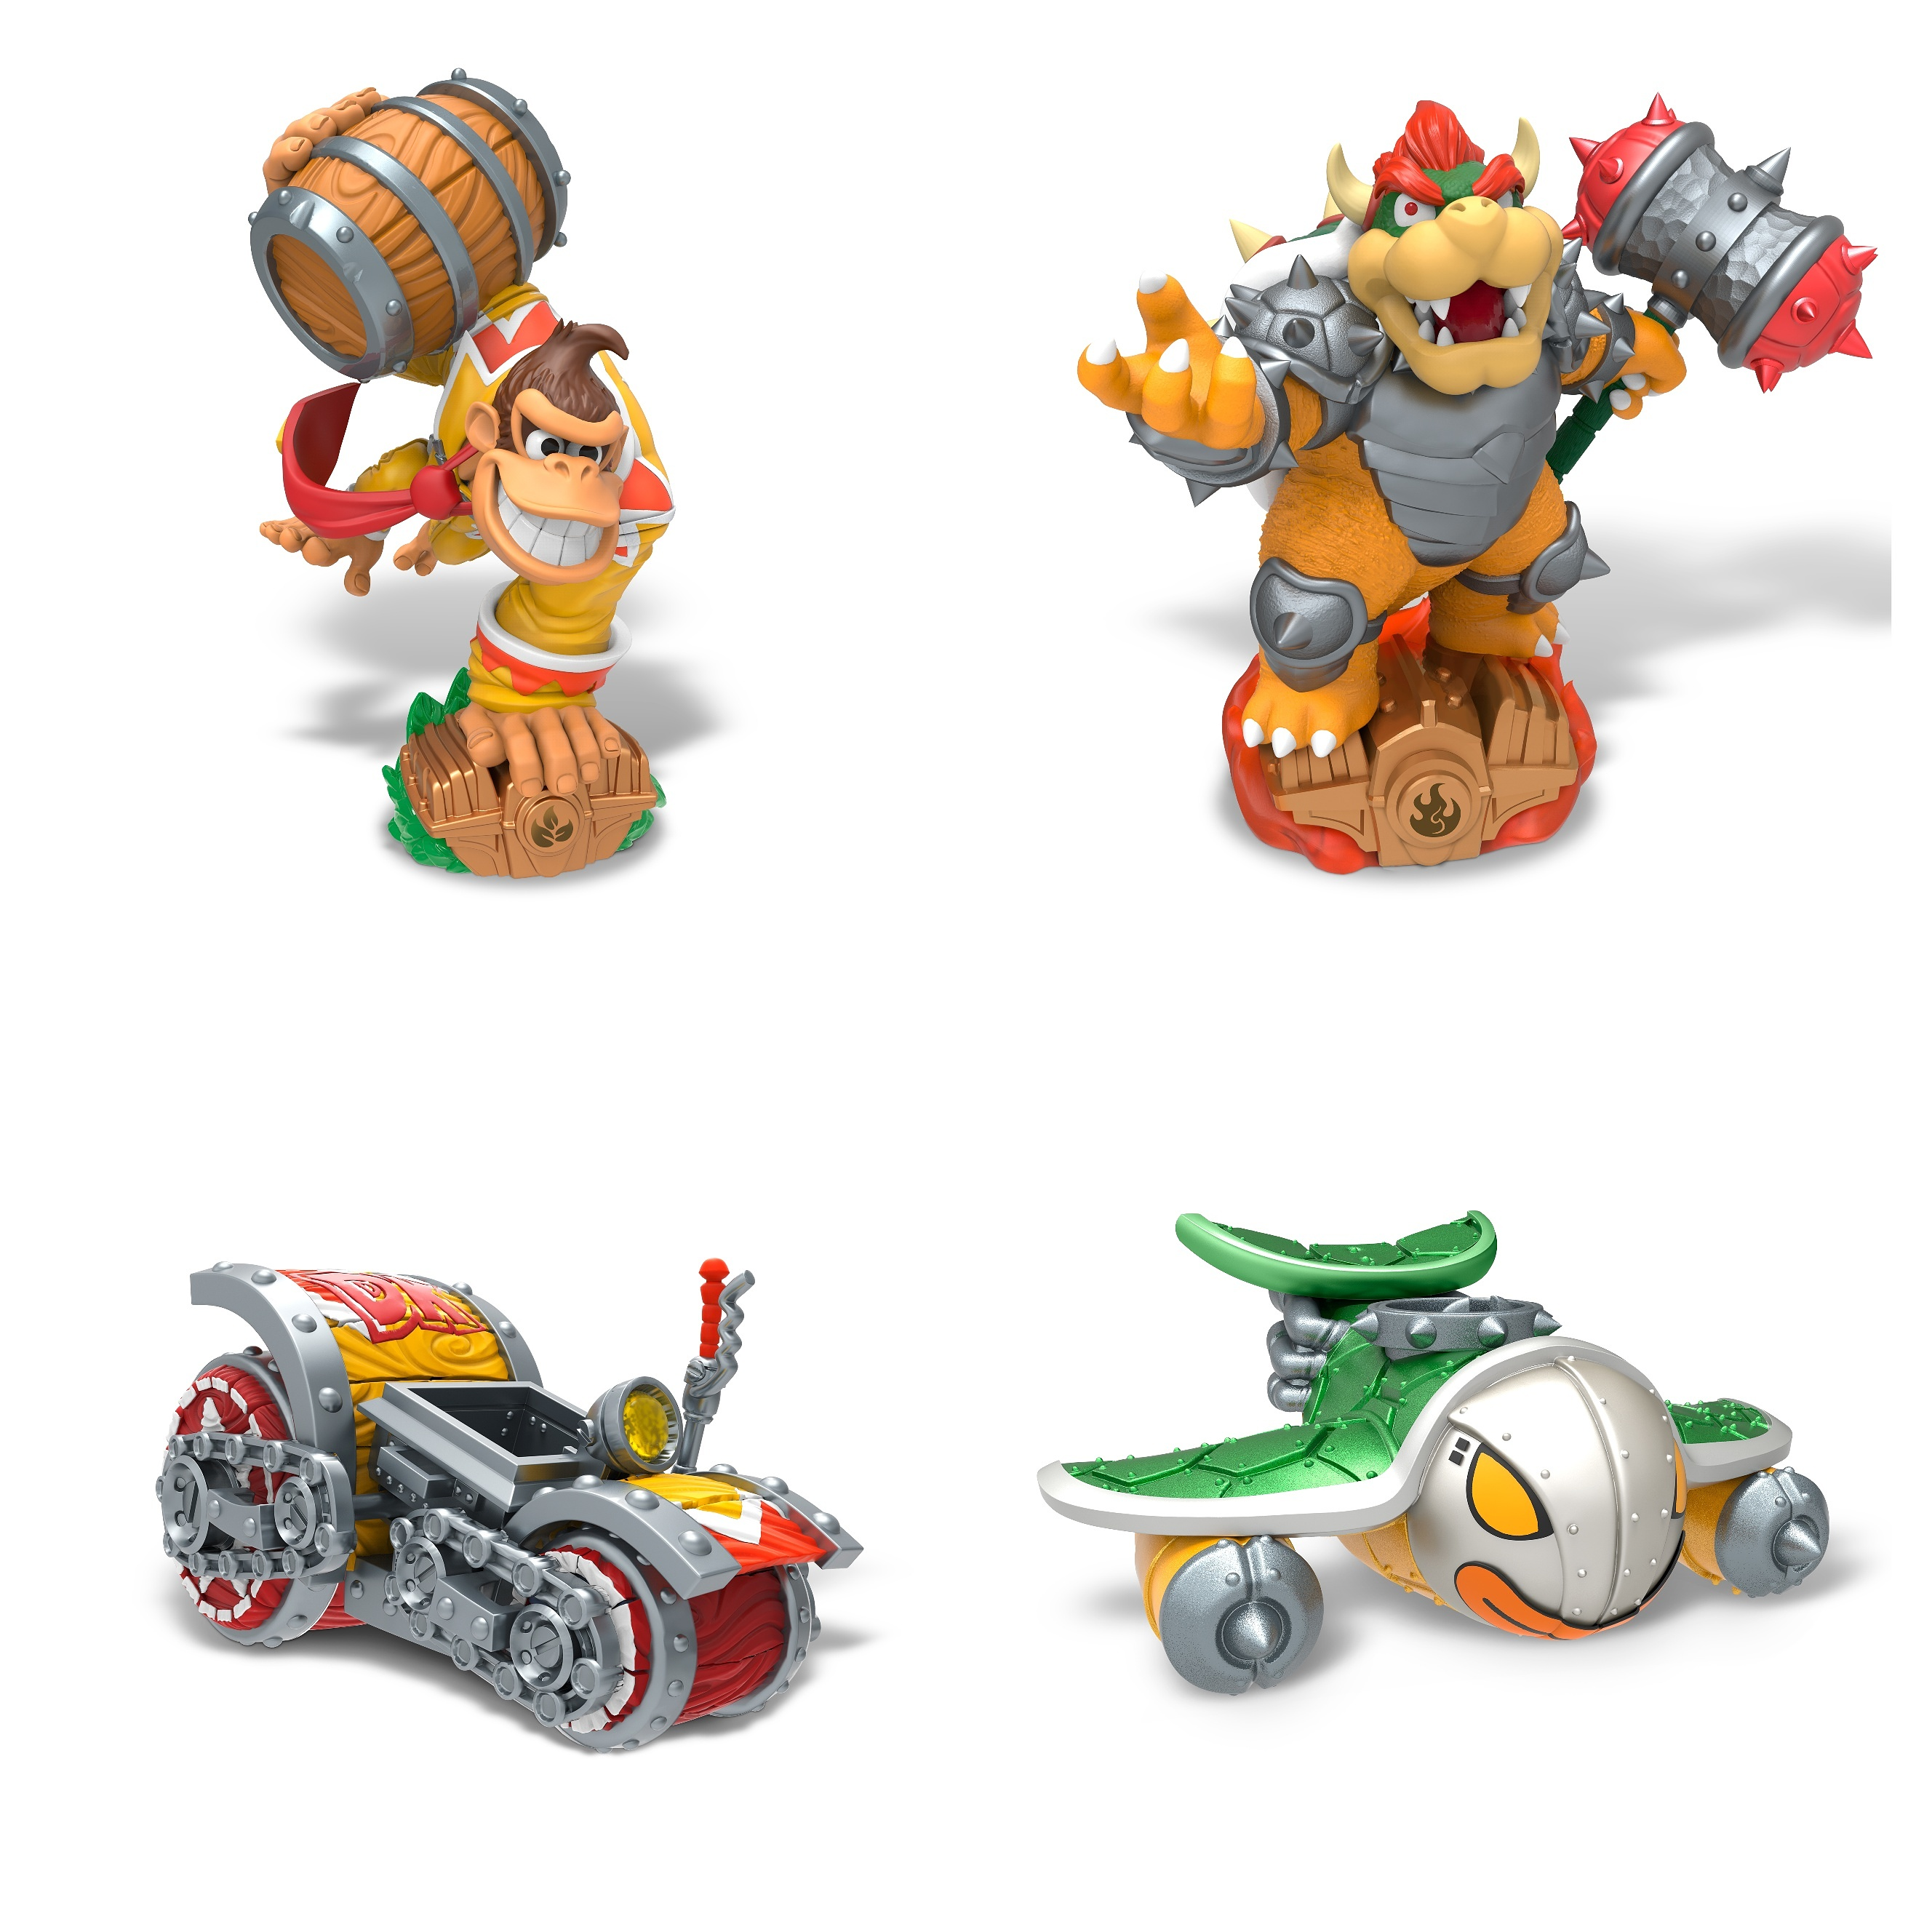 Donkey Kong and Bowser in Skylanders Superchargers